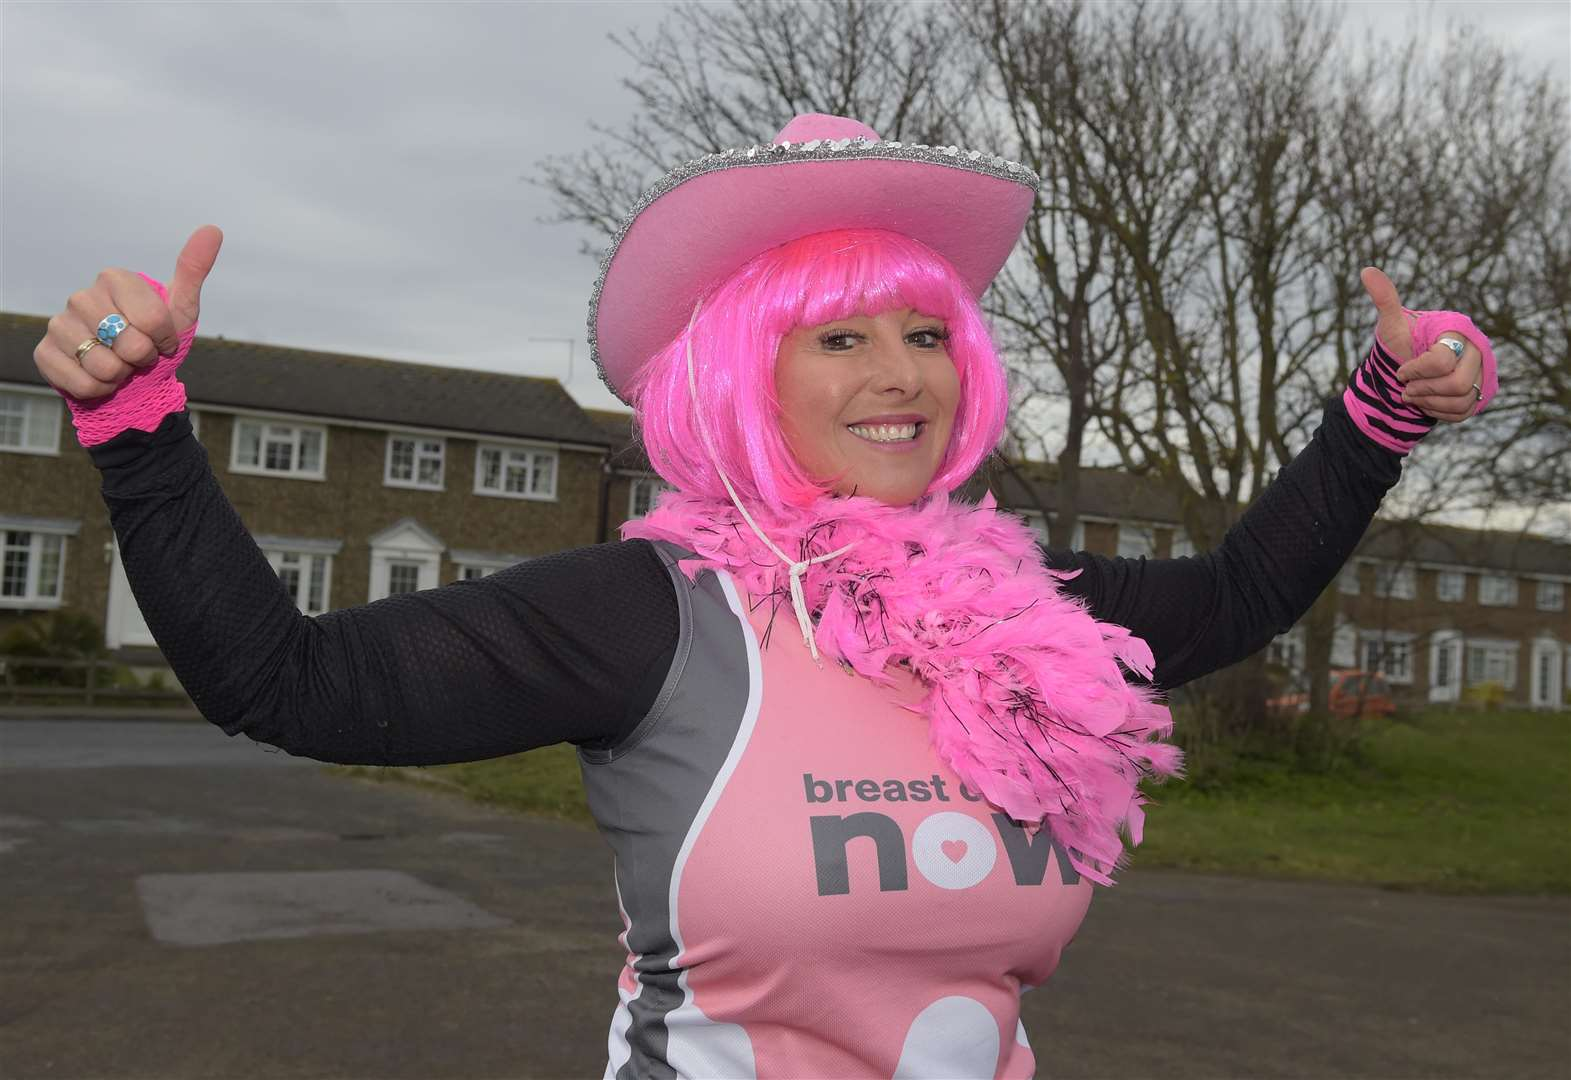 'If there's one month of the year to support Breast Cancer Now, it's this month'